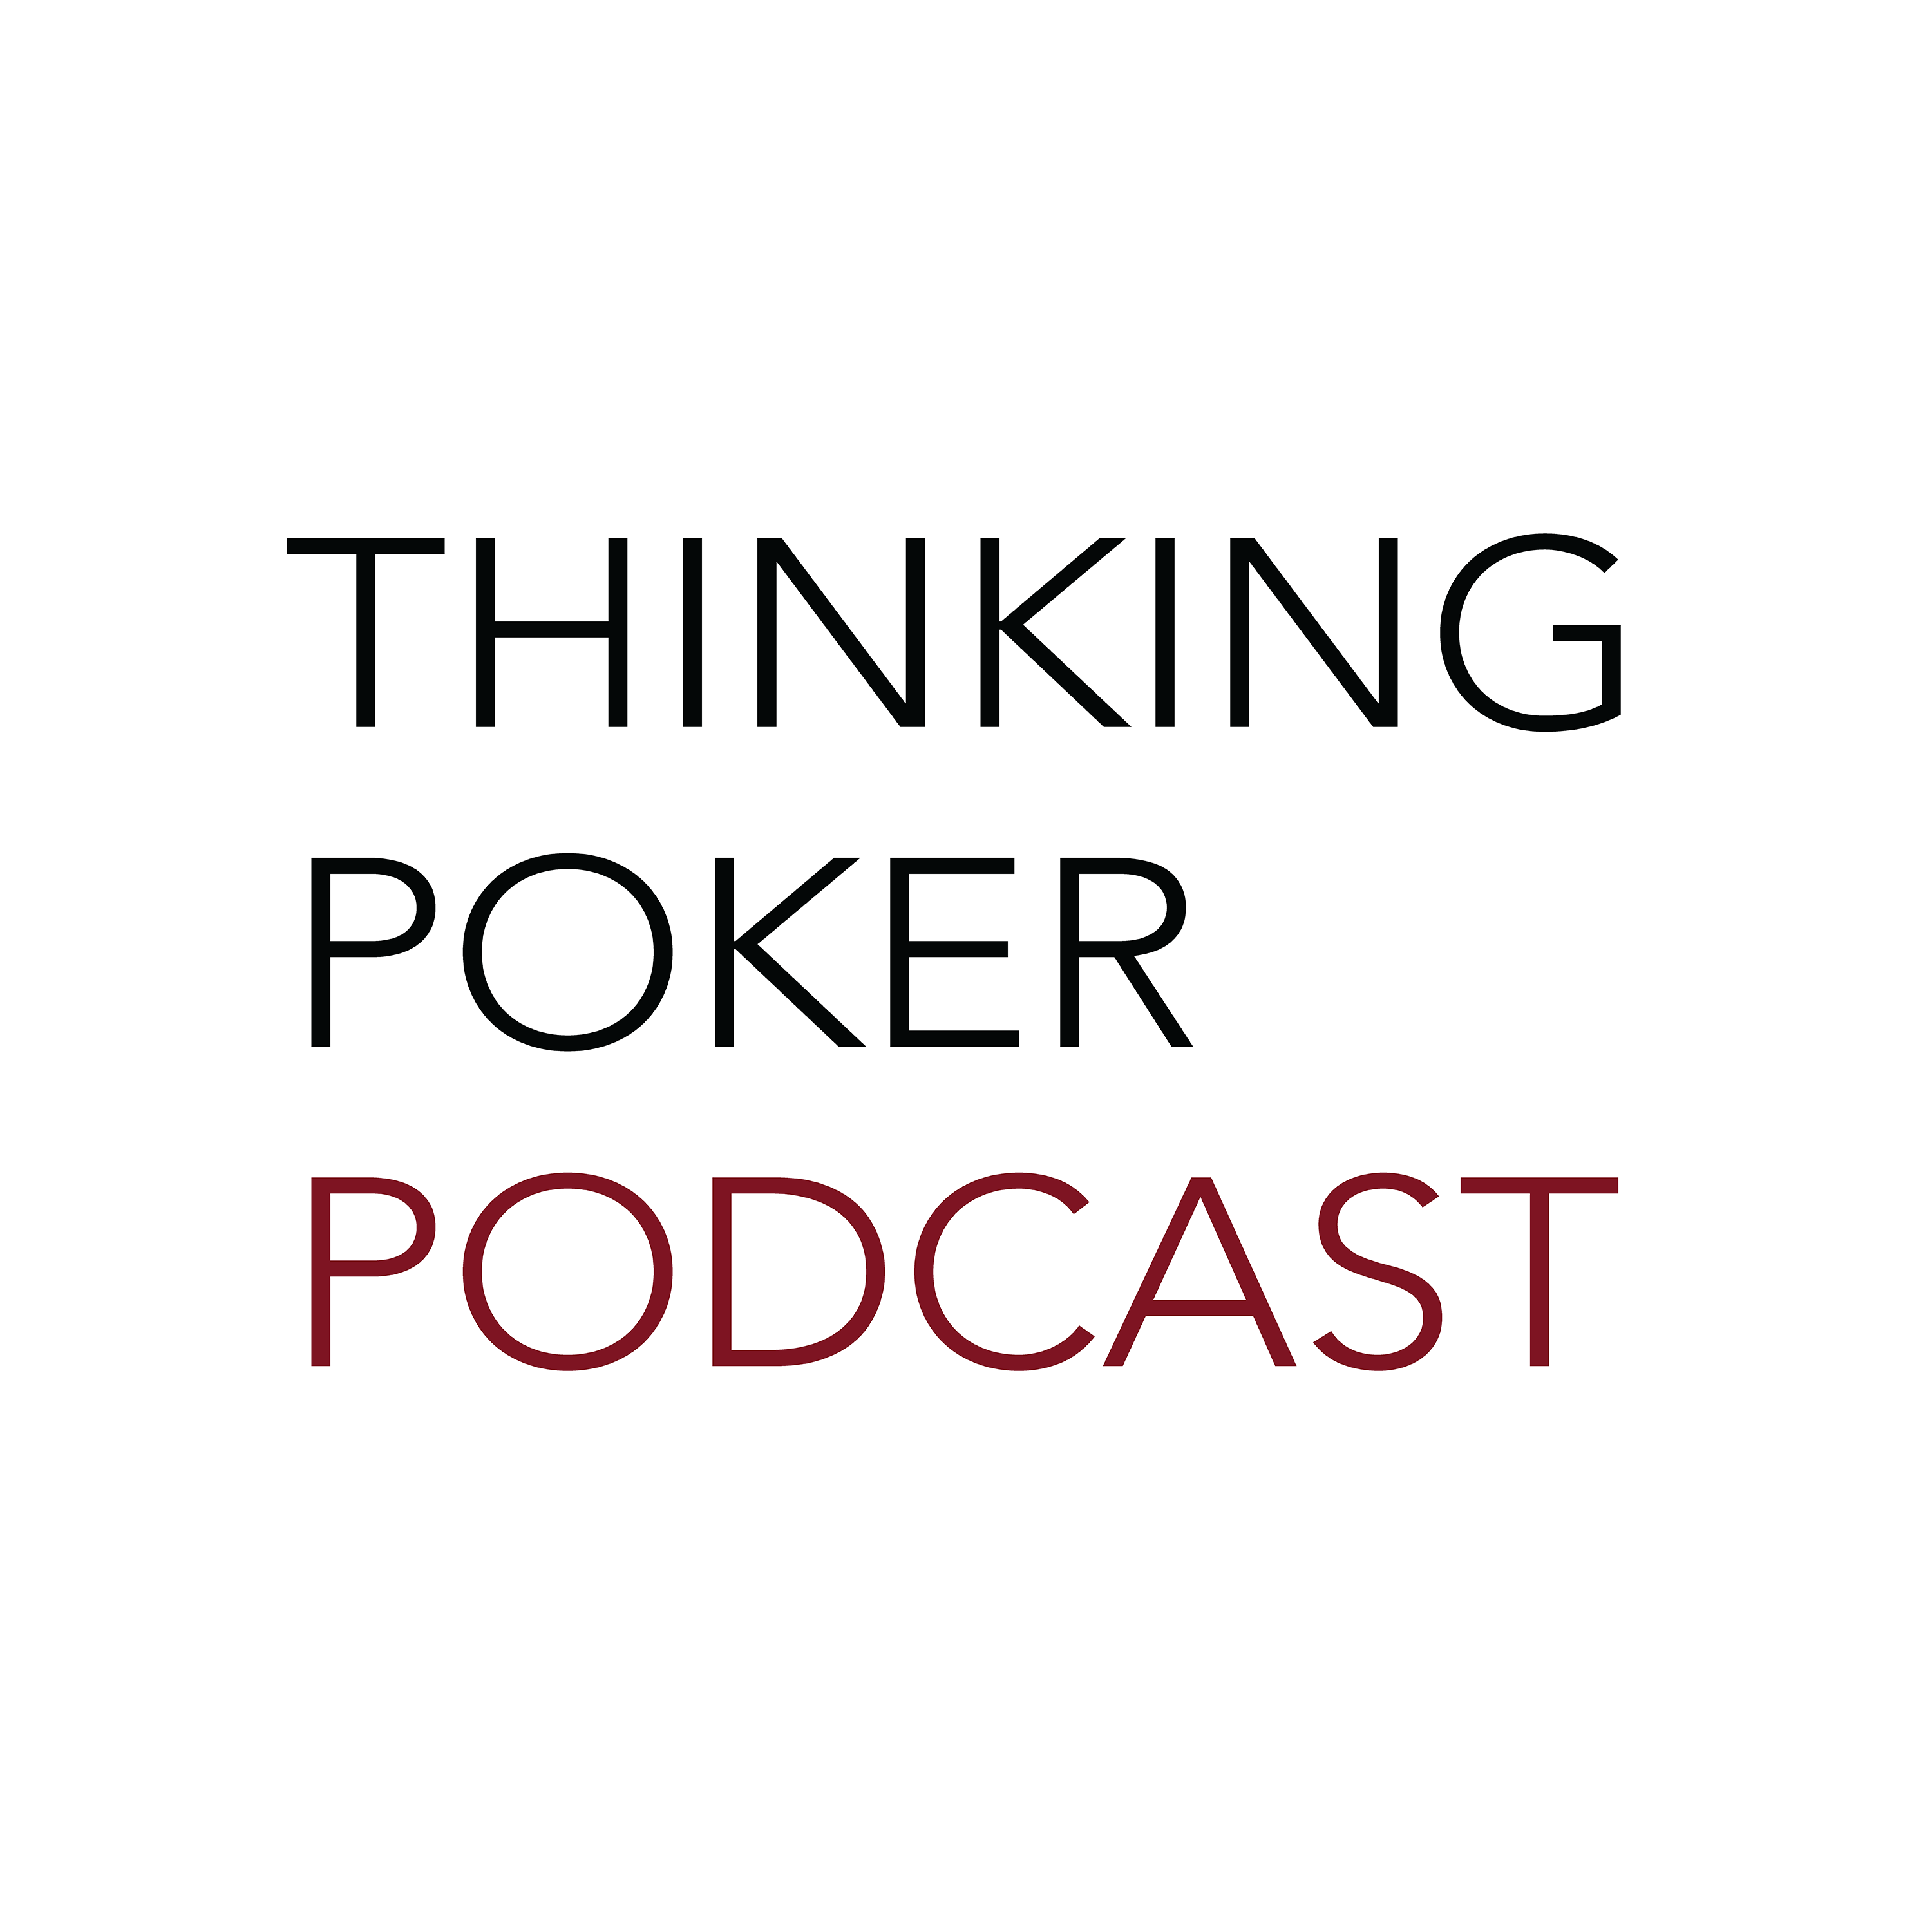 Thinking Poker – Weekly poker podcast hosted by Andrew